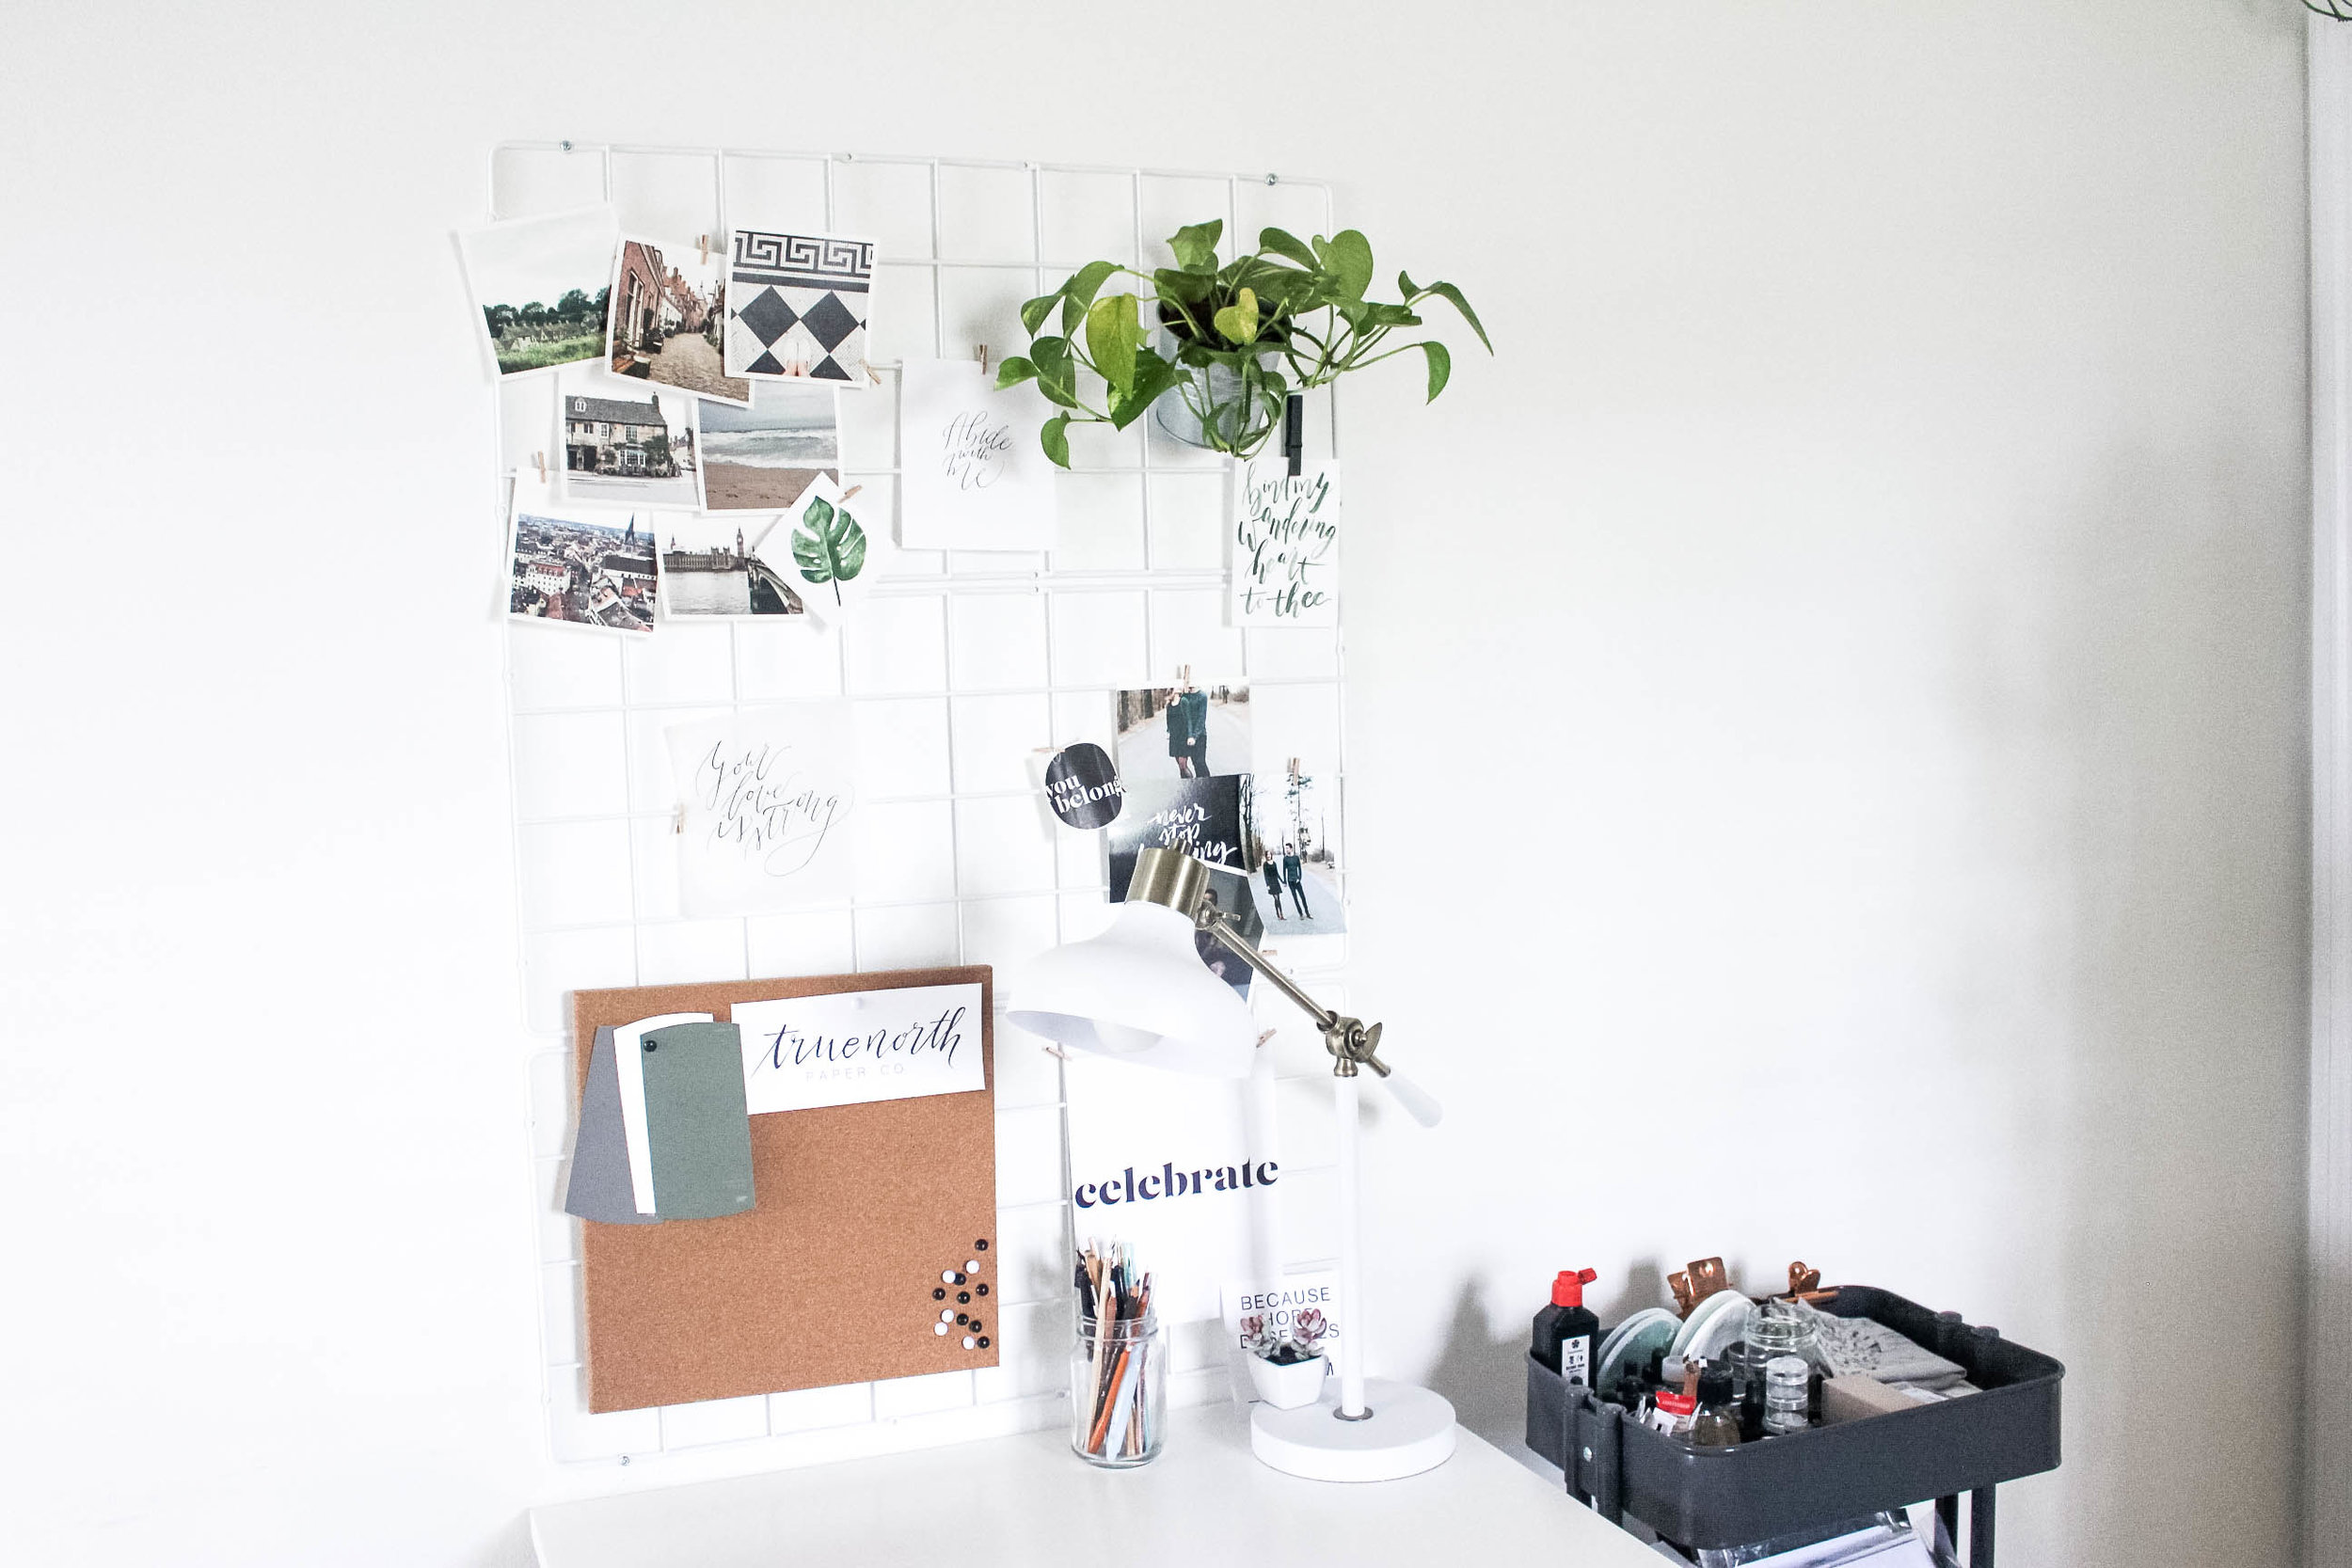 Barso Ikea Trellis Used as Office Board - Calligraphers Office Tour - True North Paper Co.